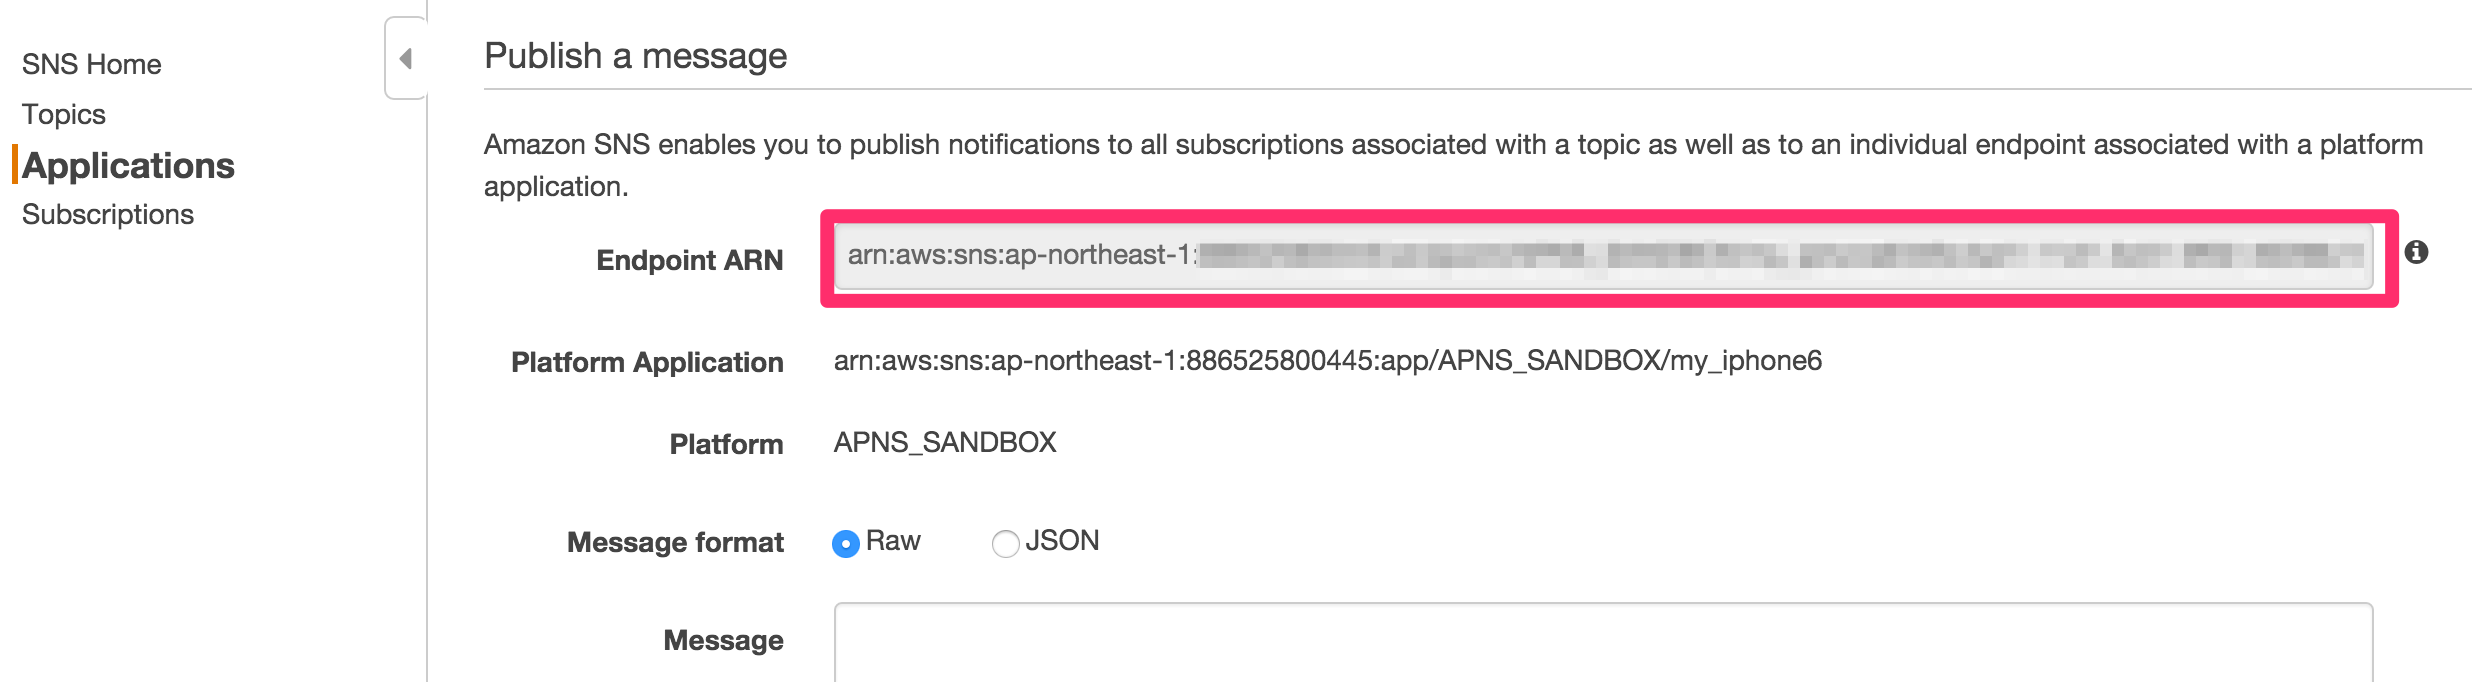 AWS_SNS_conf_endpoint_arn.png